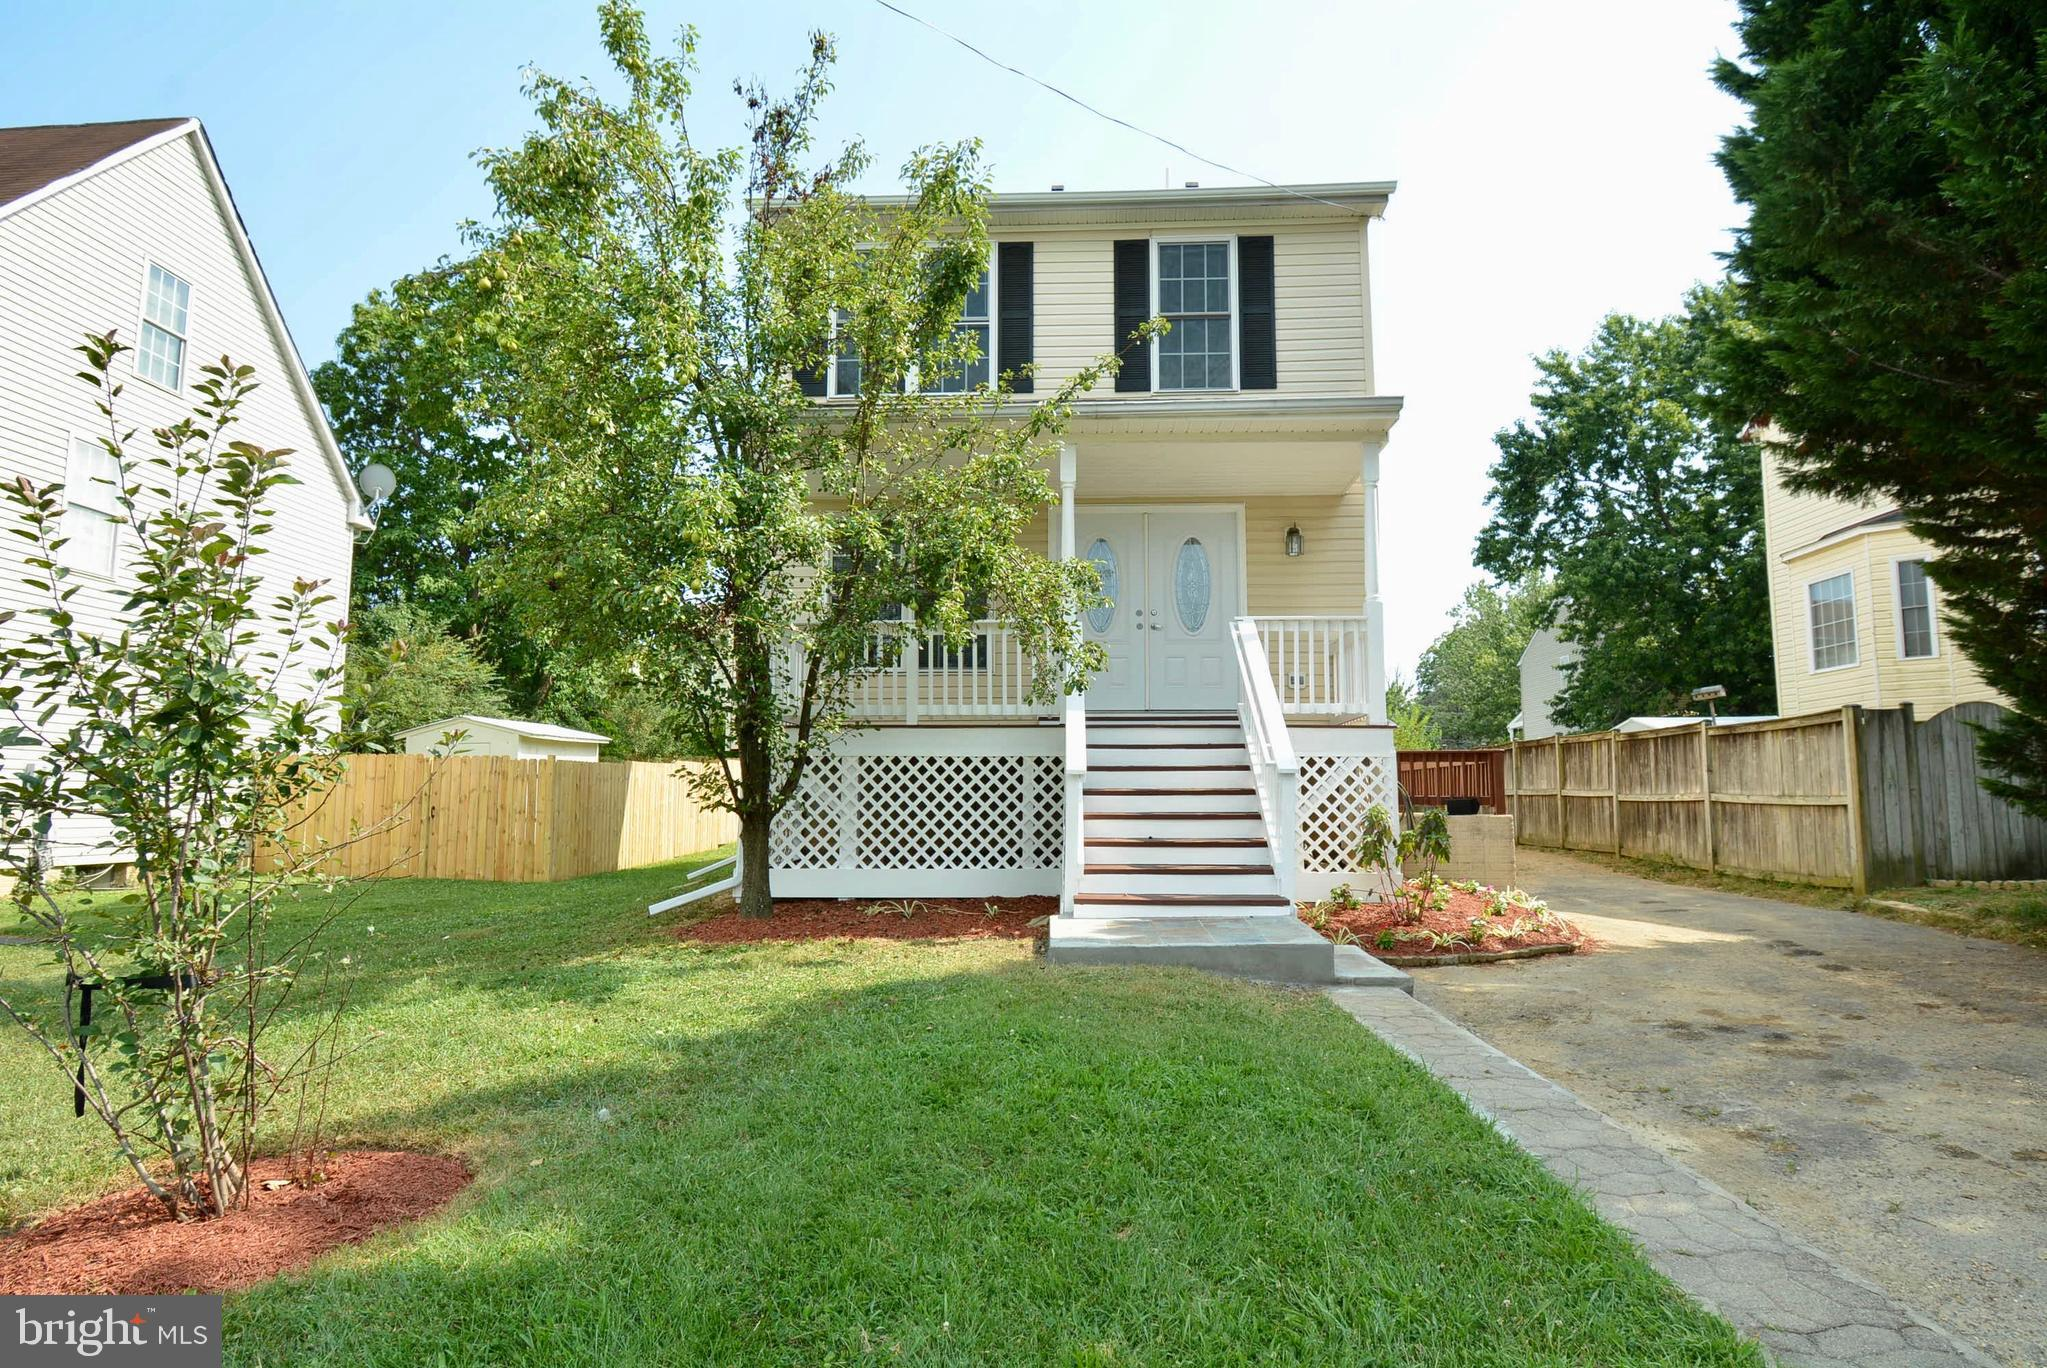 """HUGE PRICE REDUCTION!! This is a """"MUST SEE INSIDE!  LITE-BRIGHT- READY FOR NEW OWNER! KITCHEN  AND BATH REMODEL!  OUTSIDE ENTRANCE TO BASEMENT/FULL BATH AND BEDROOM!  HUGE DECK ACROSS BACK. NO HOA, GREAT COMMUTE, VACANT! HURRY--GET IN FOR HOLIDAYS. SHOW & SELL!"""